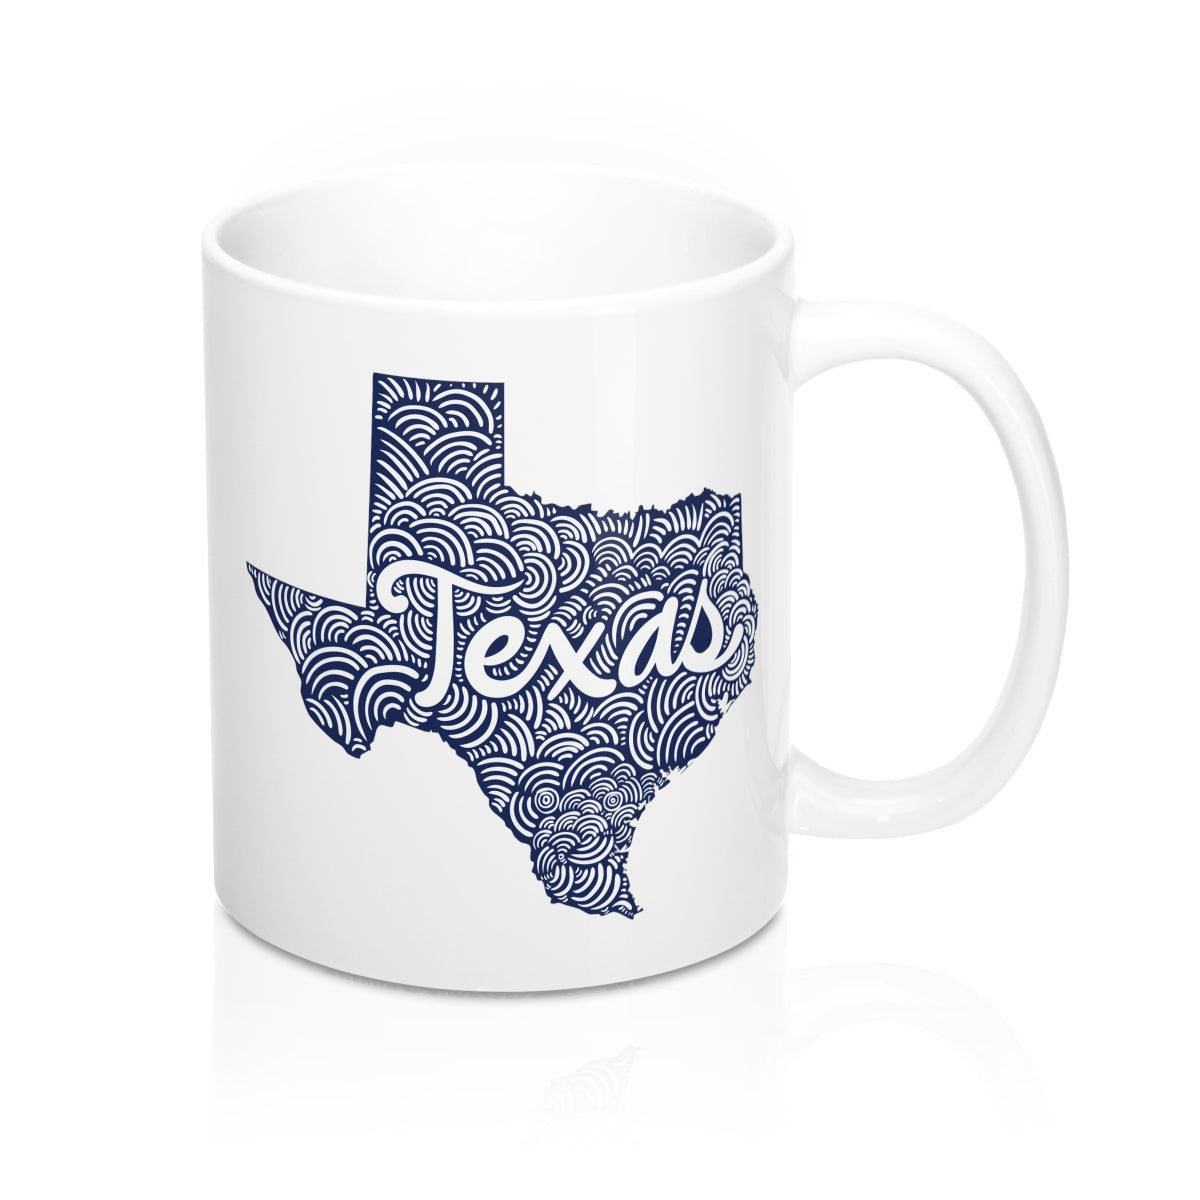 Texas Stickers. CO State Outline, Texas State Shape, City, Town Stickers, tshirt, t-shirt, hoodie